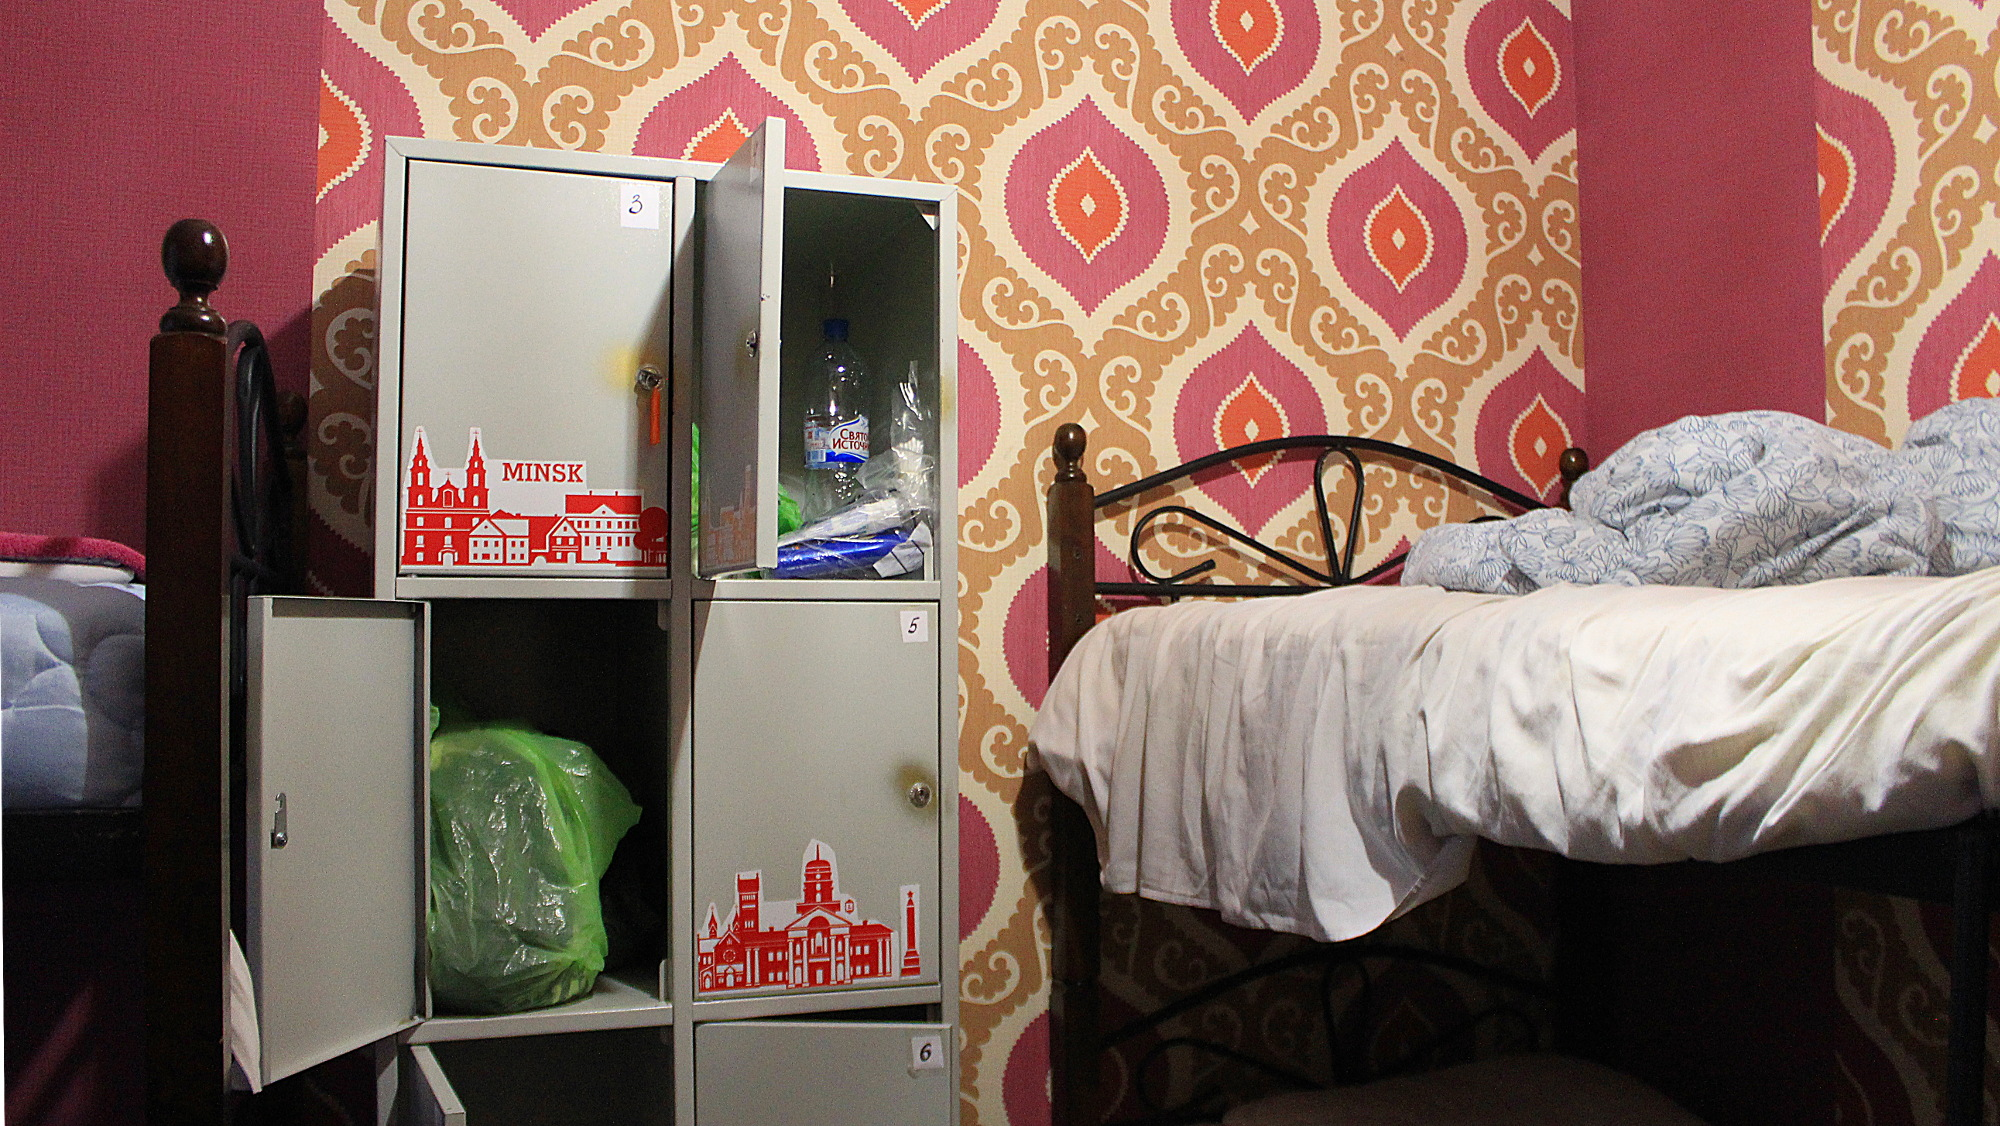 I recommend visiting Eastern Europe. Backpacker hostel lockers in Belarus, Minsk with red and yellow tapestry in the background.